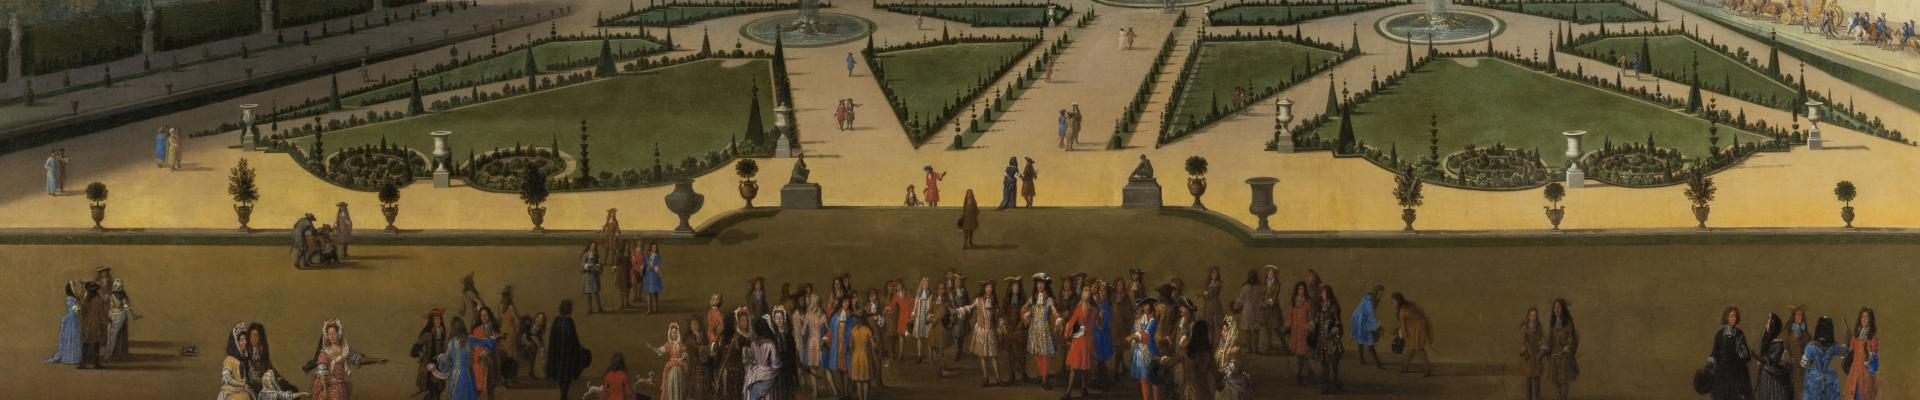 a day in the life of louis xiv palace of versailles